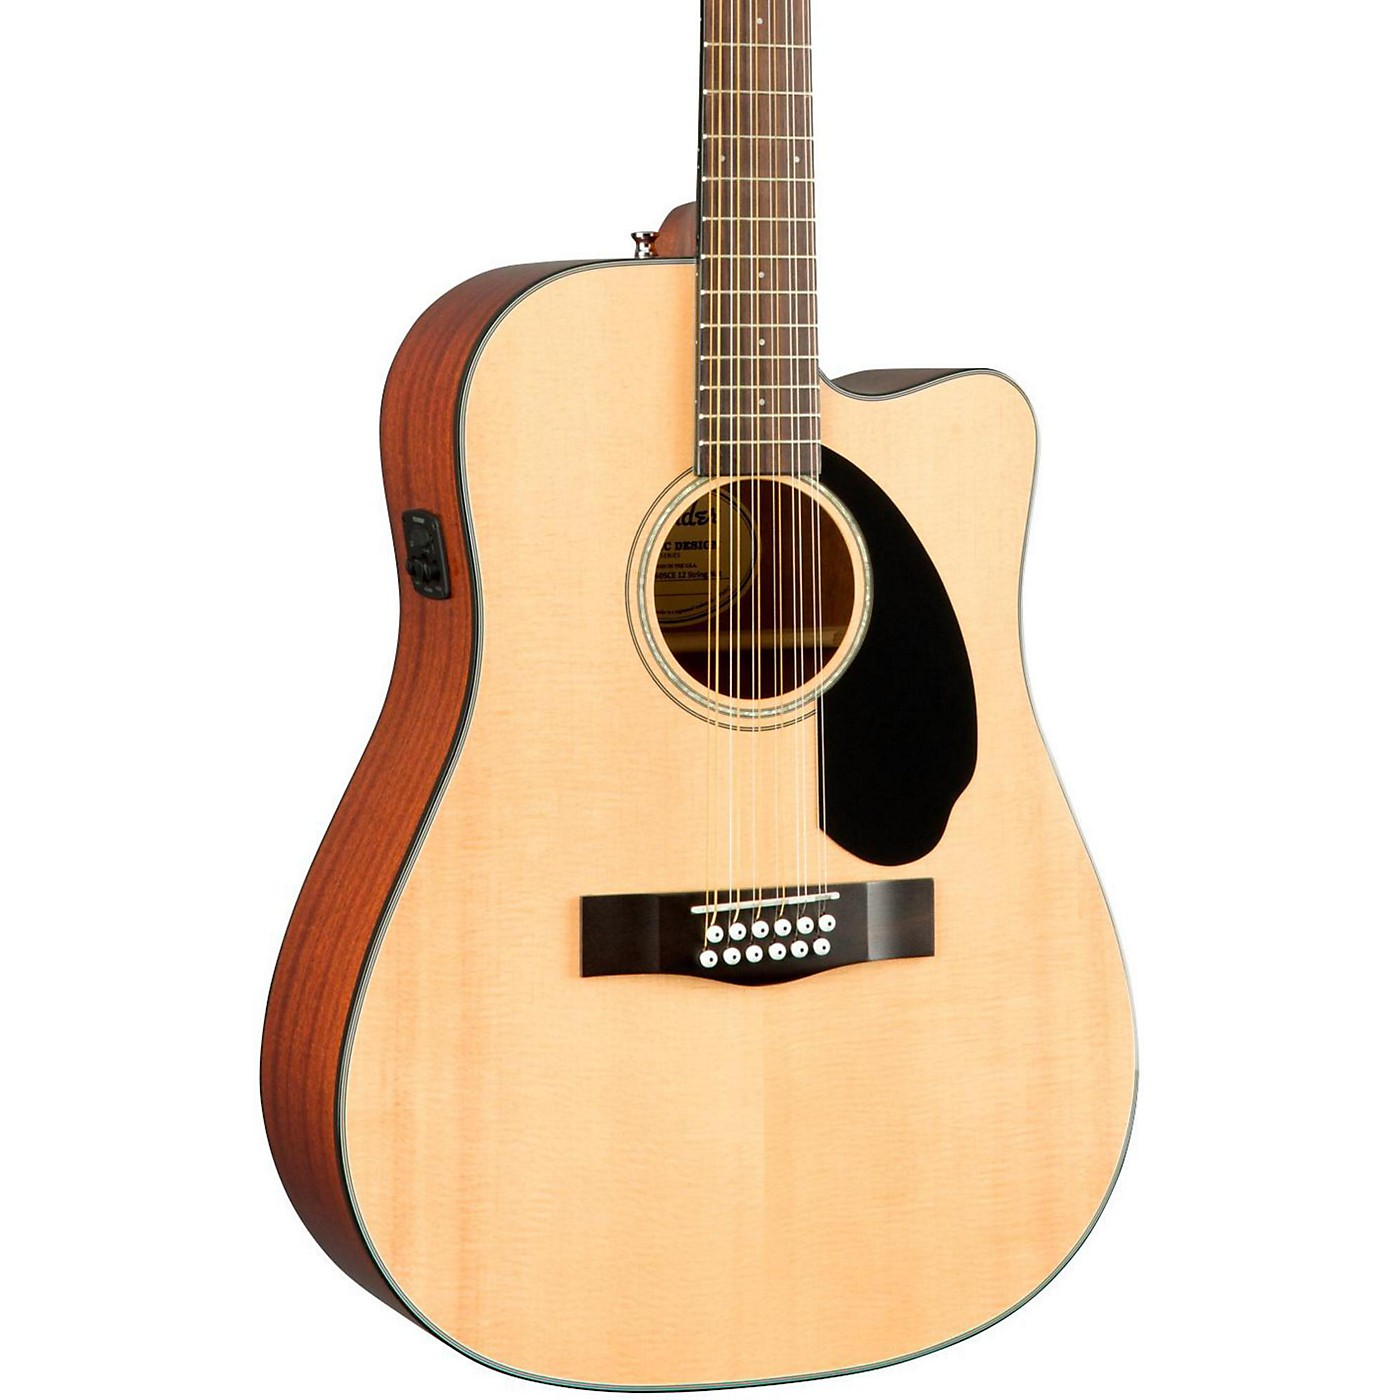 Fender Classic Design Series CD-60SCE-12 Cutaway Dreadnought 12-String Acoustic-Electric Guitar thumbnail